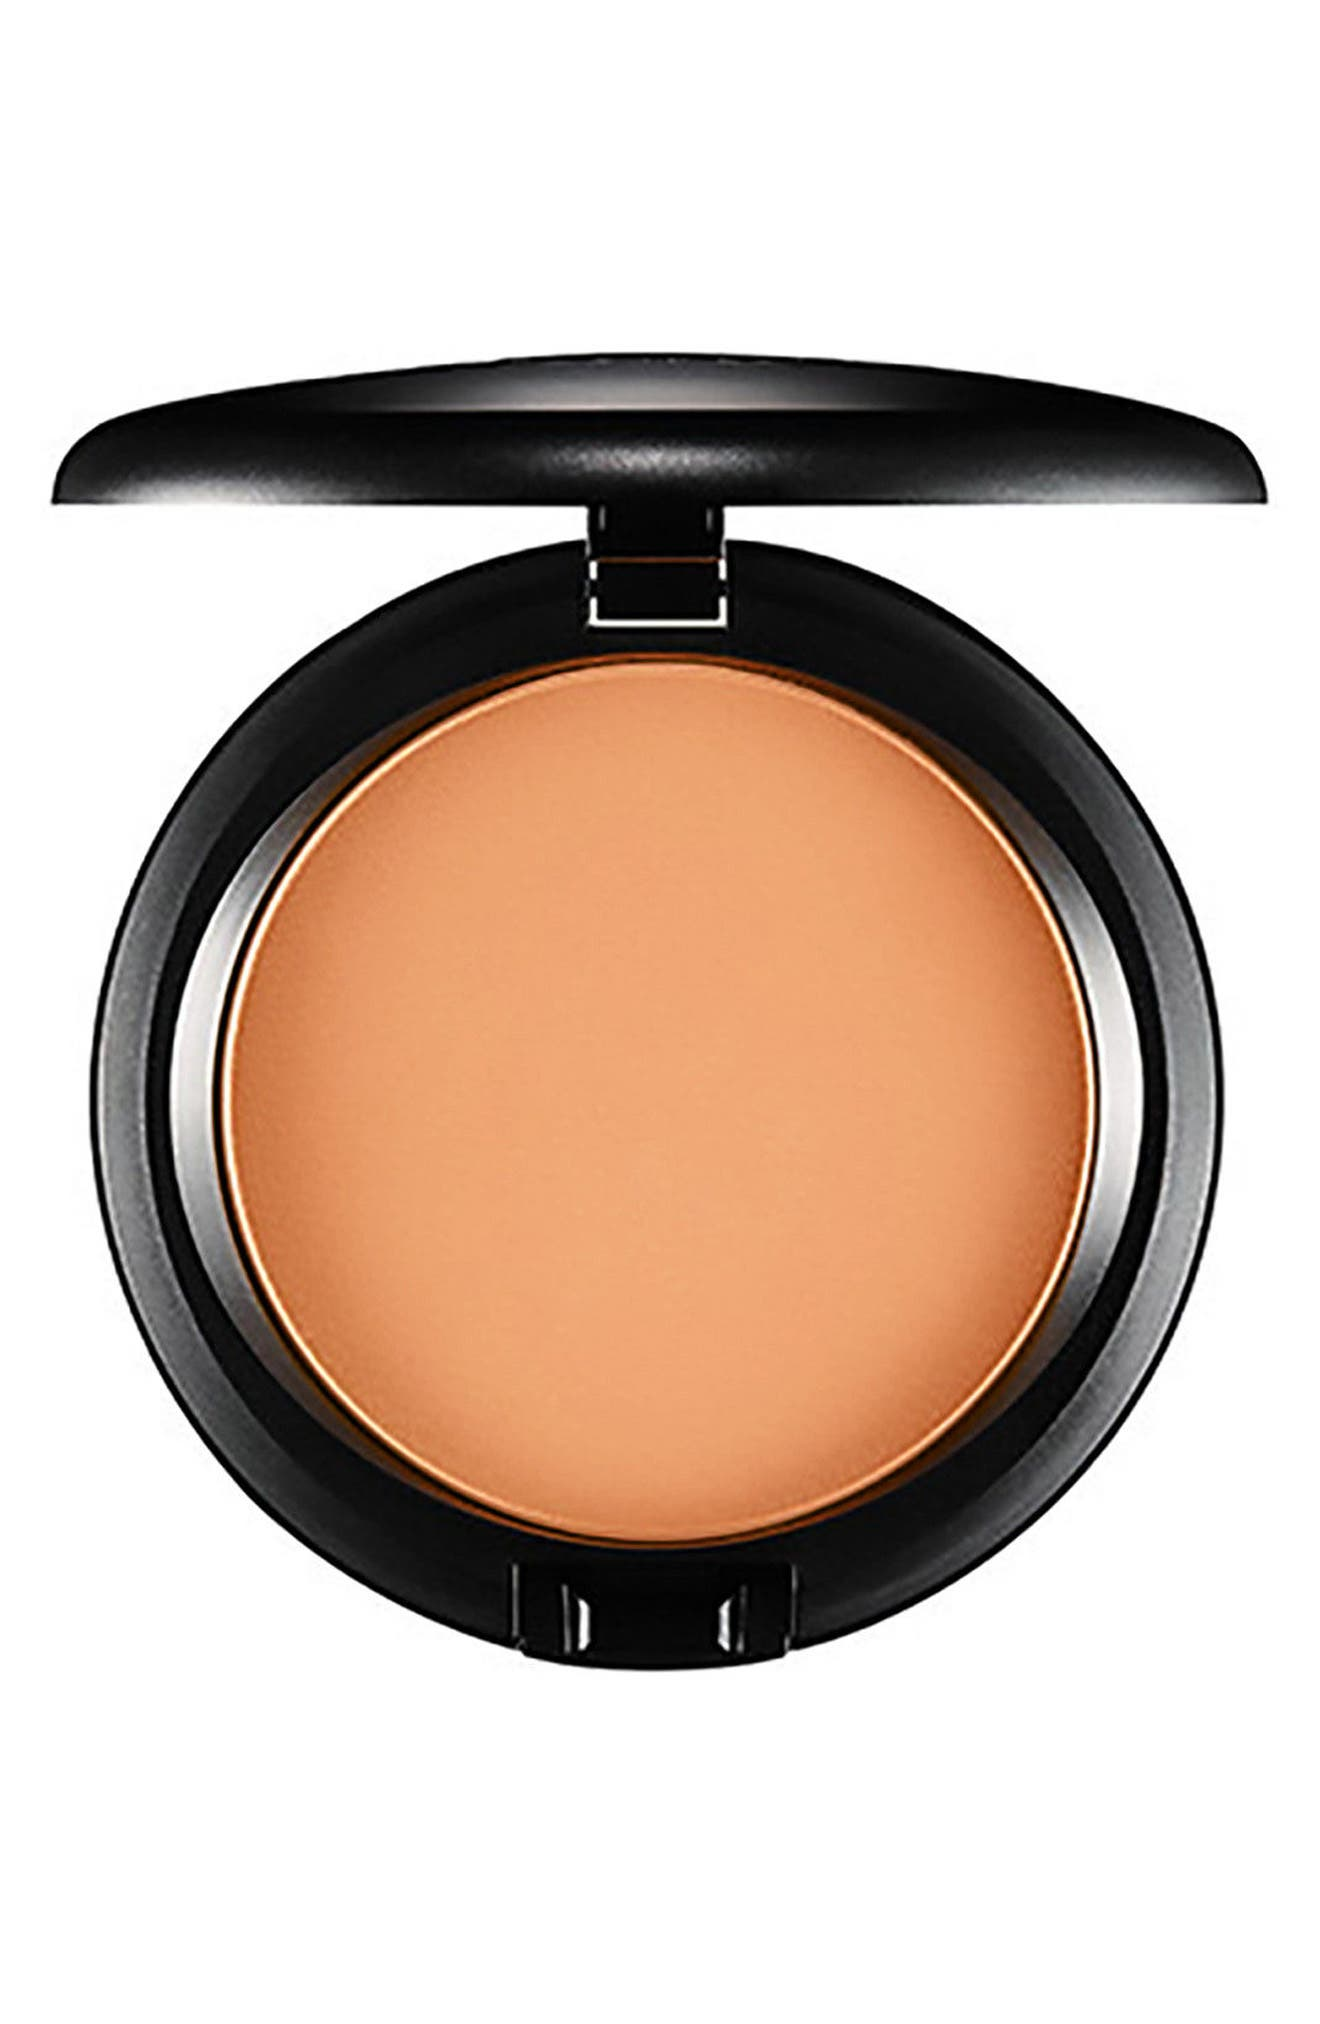 MAC 'Pro Longwear' Powder/Pressed